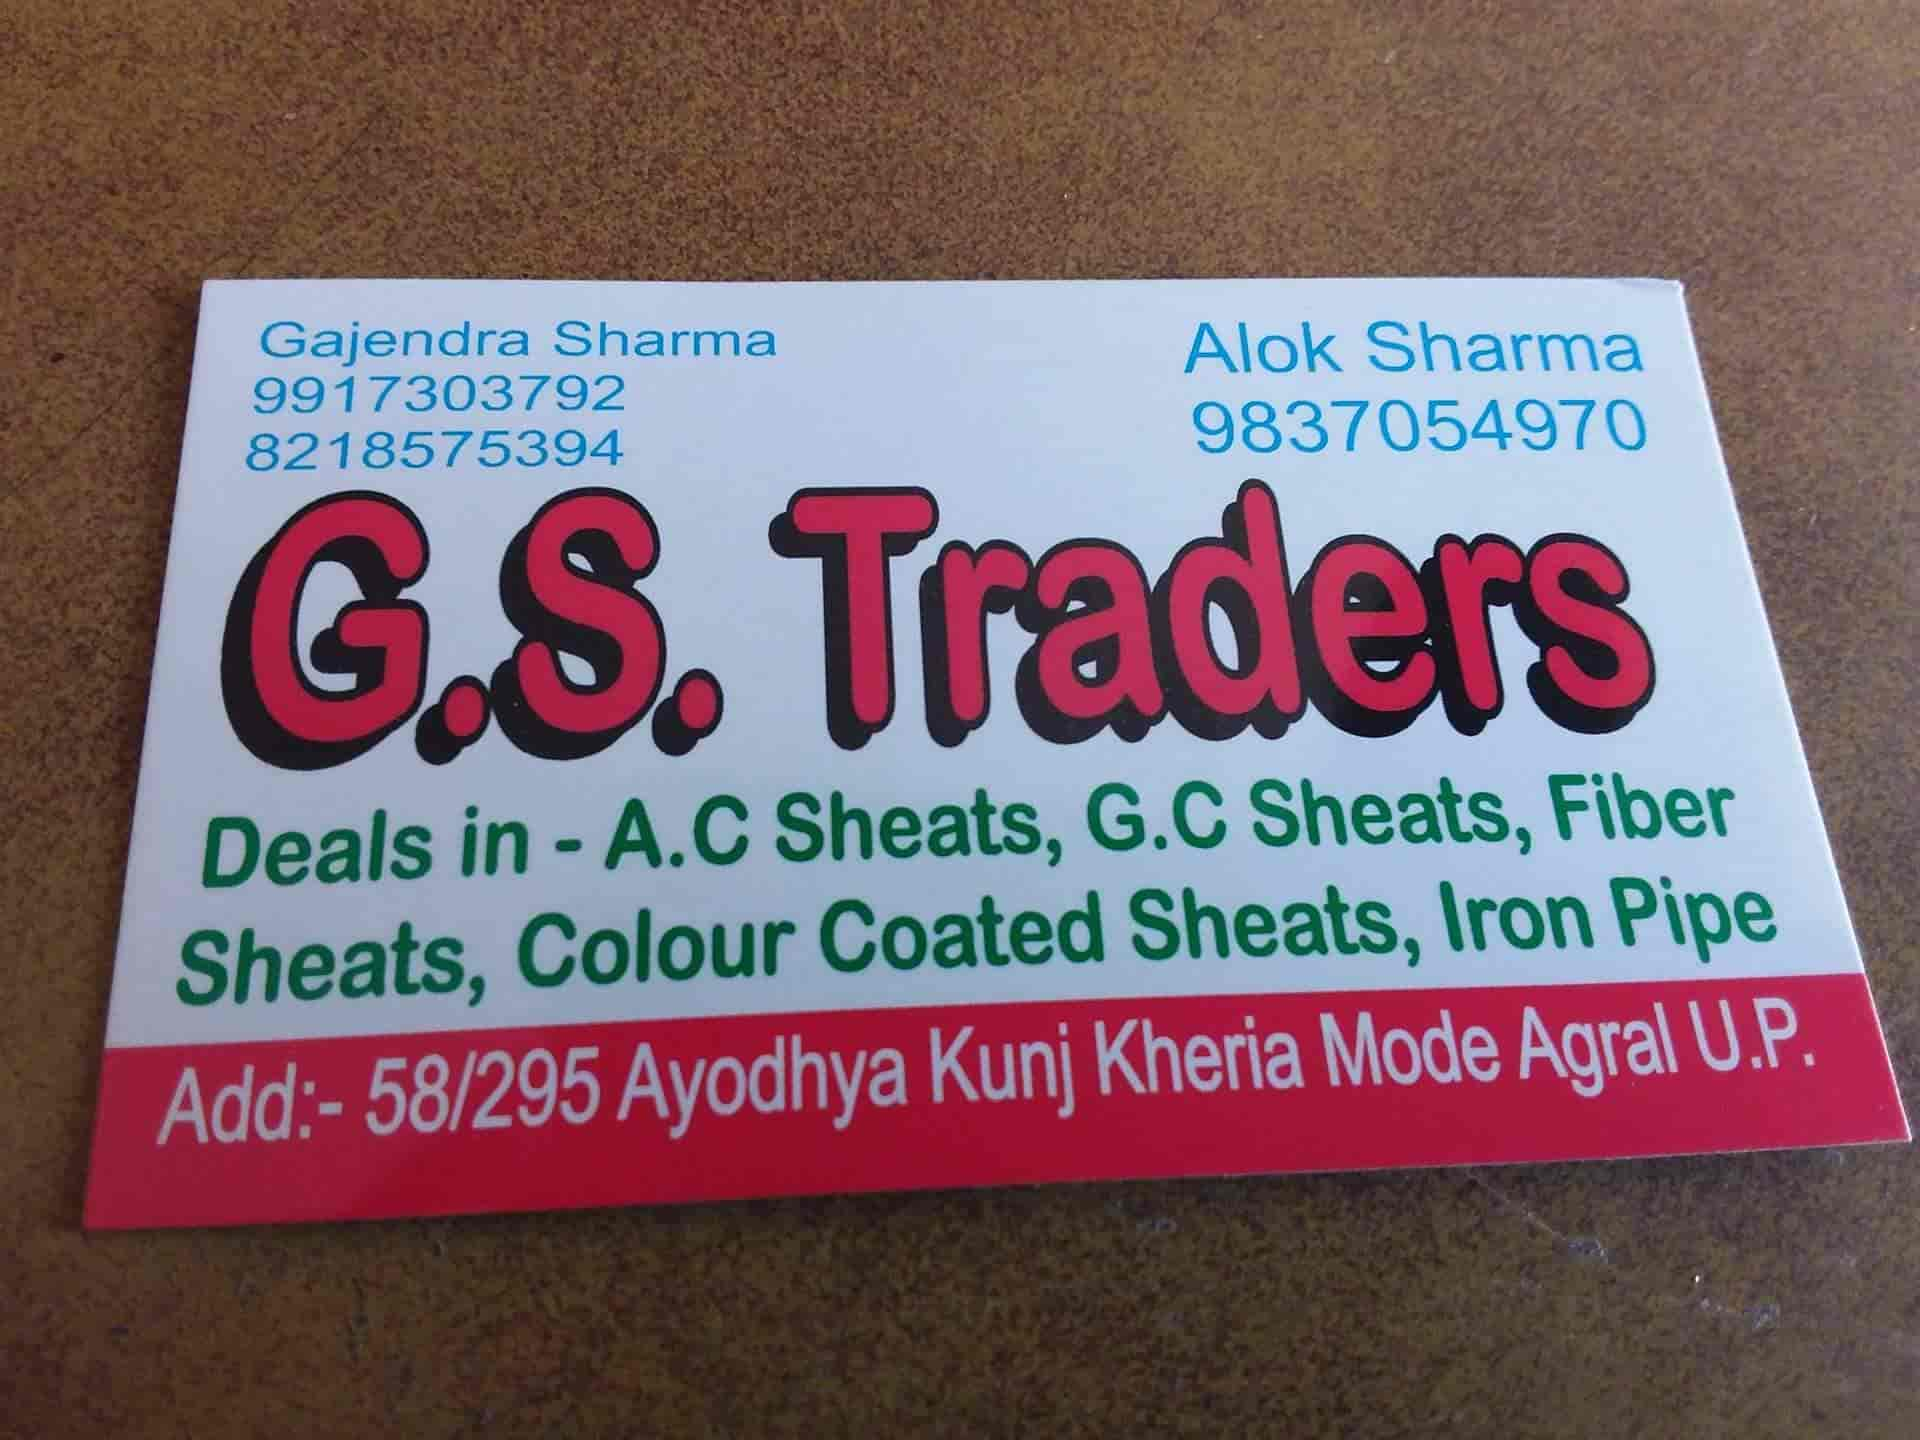 G S Traders Photos, Arjun Nagar, Agra- Pictures & Images